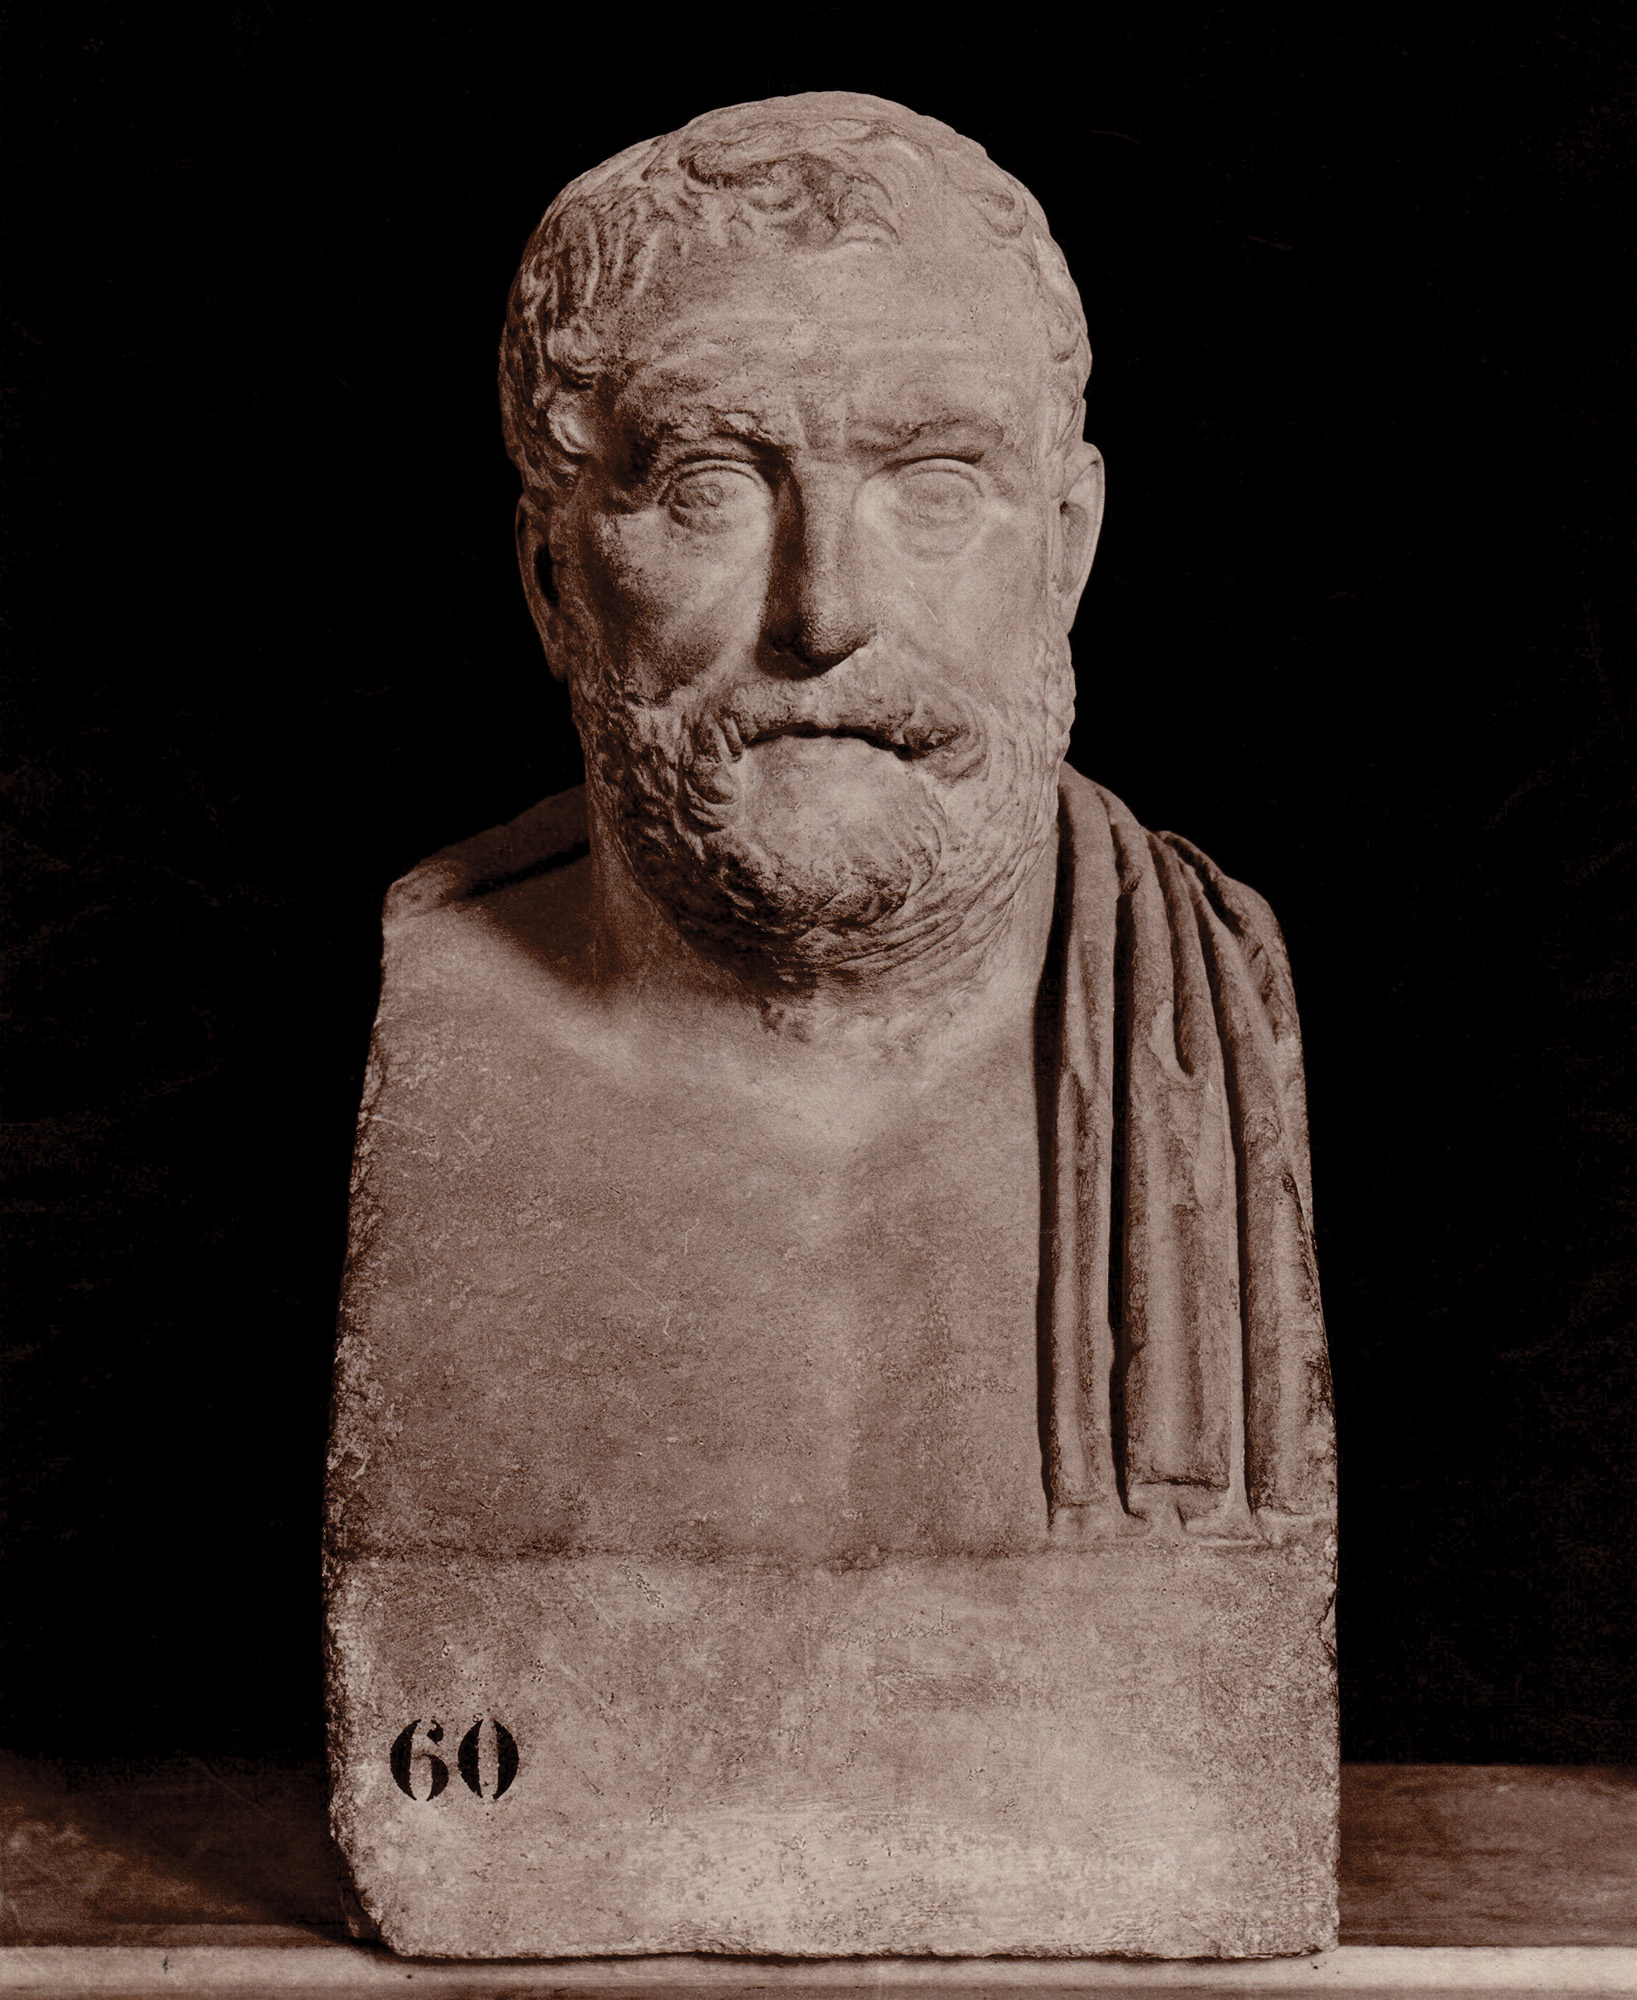 Herm of Thukydides. Marble. Rome, Capitoline Museums, Palazzo Nuovo, Hall of the Philosophers